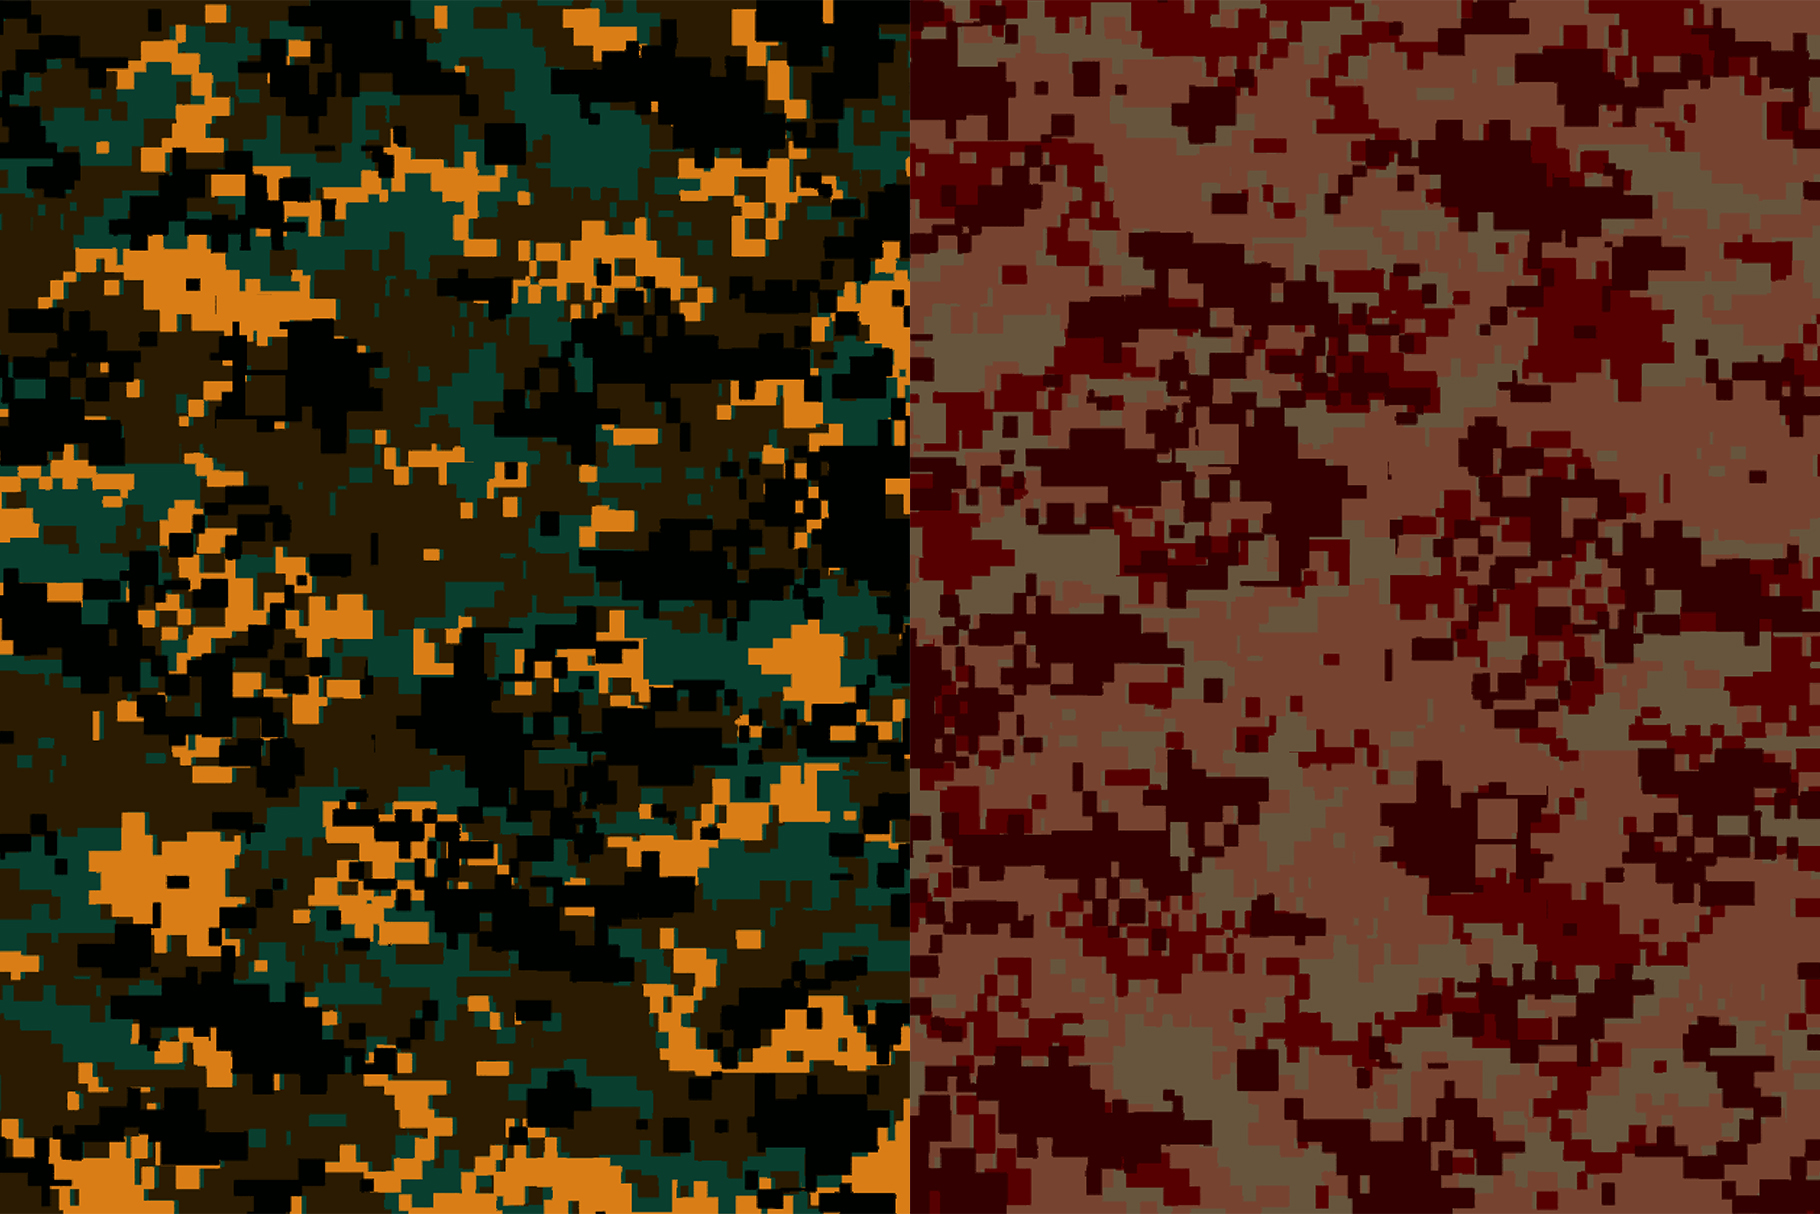 10 Pixel Camouflage Patterns example image 9